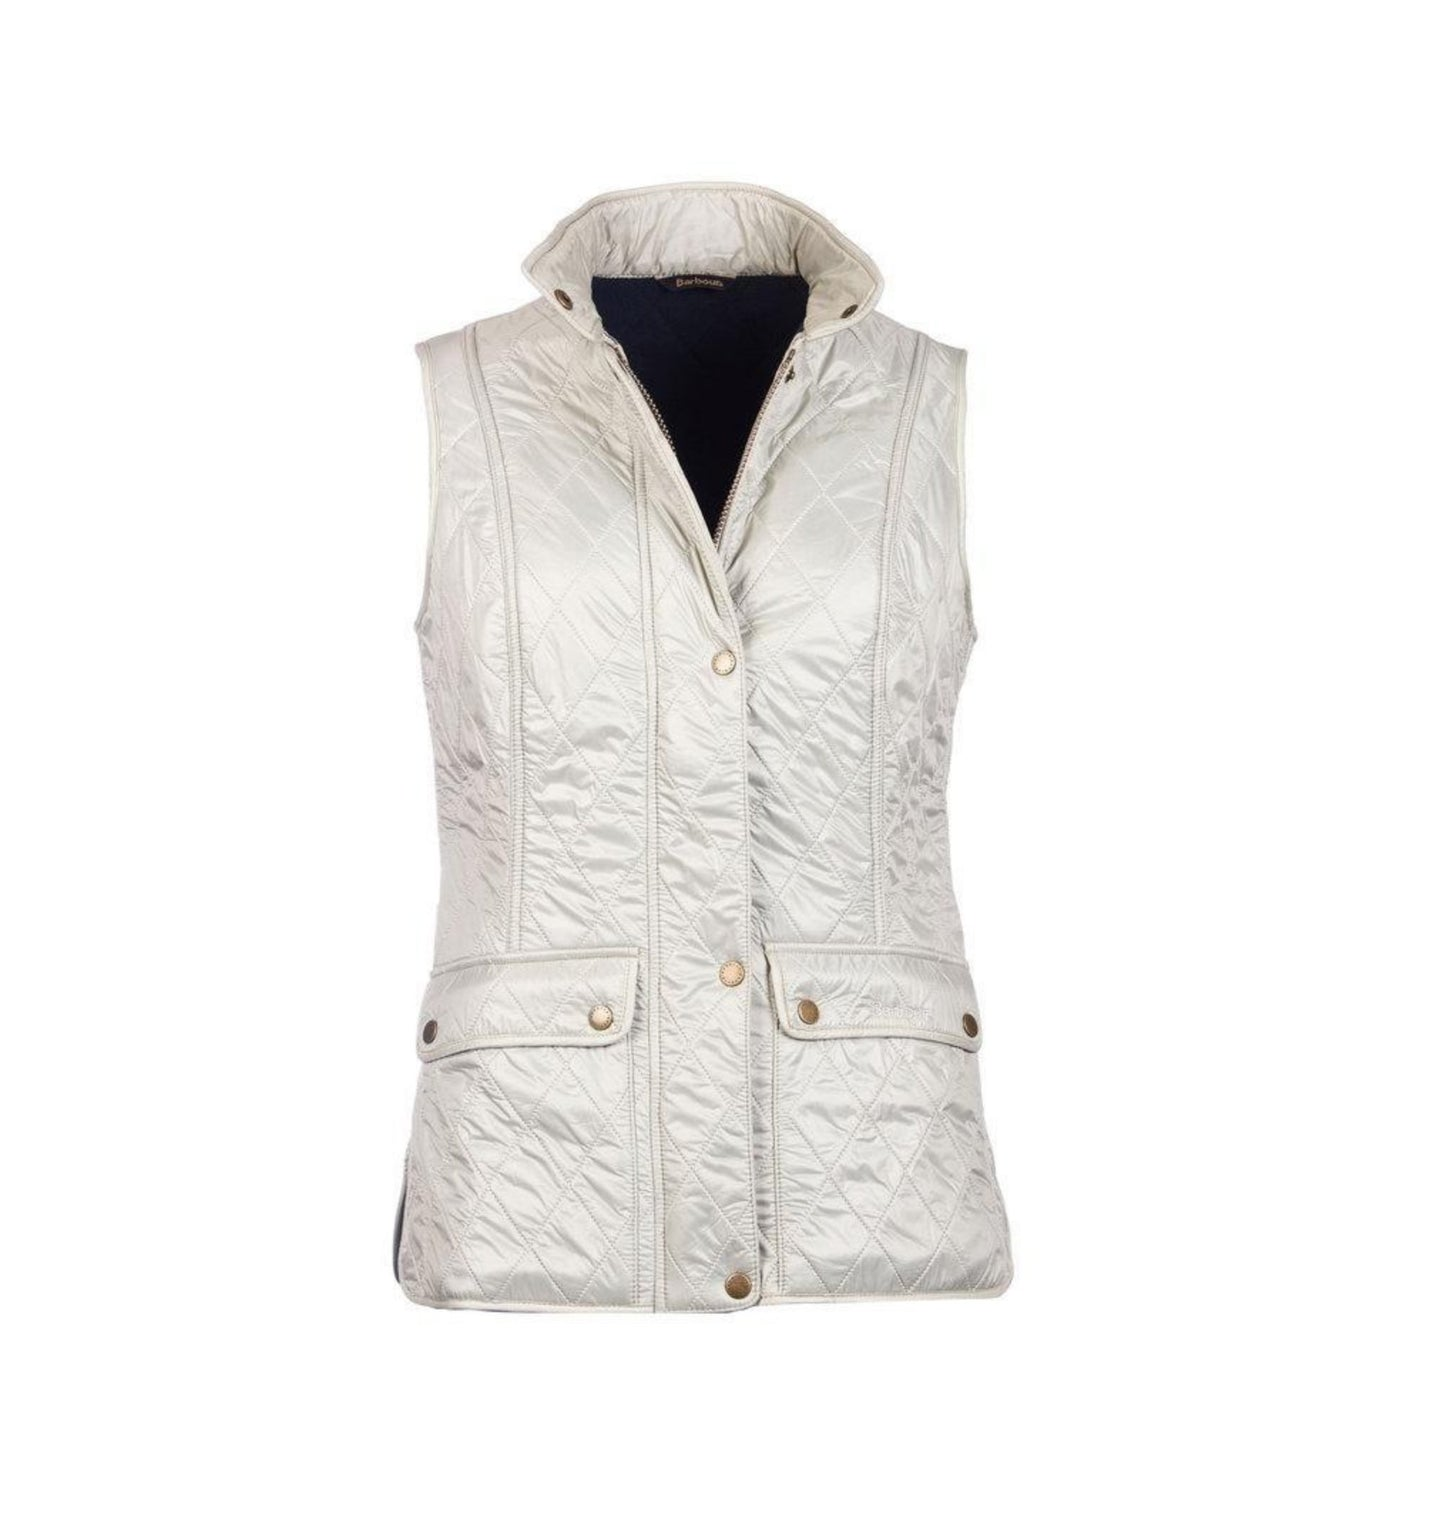 Barbour WOMEN - VESTS Barbour, Wray Gilet, Mist